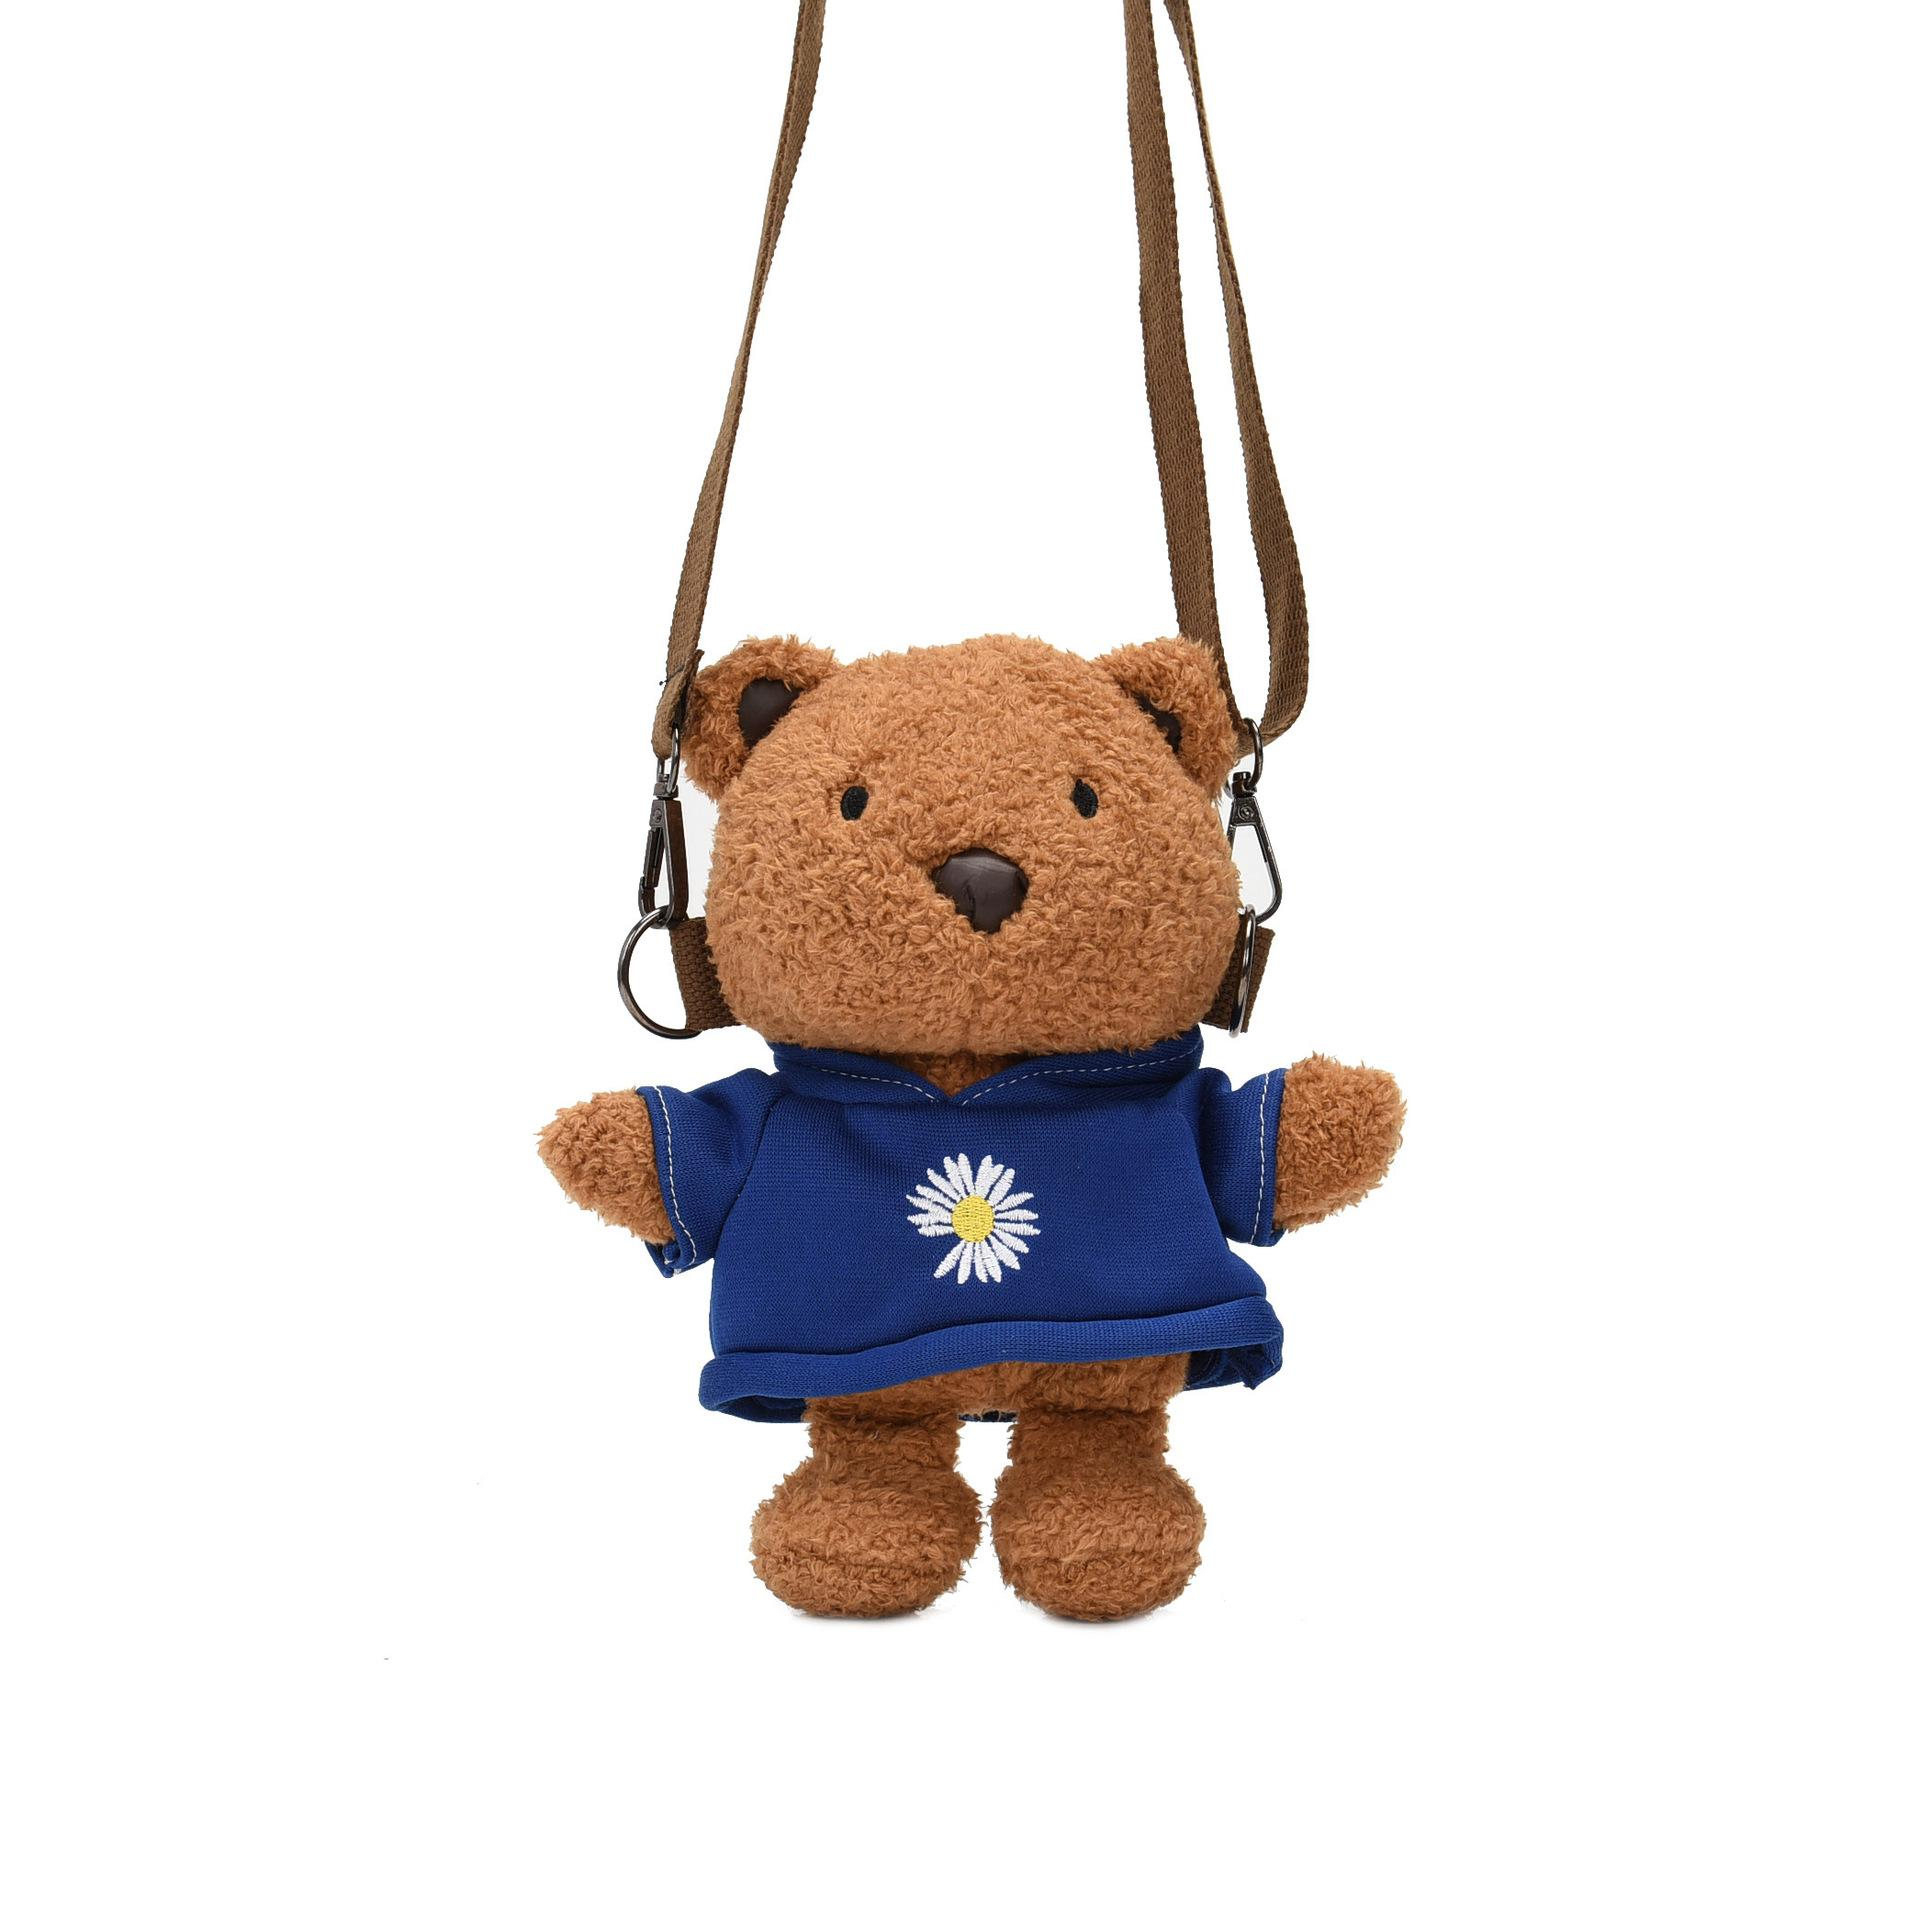 8 inch Animal dolls Plush Bears toys Bear Backpack kid toy 2020 selling small and exquisite gift of the child